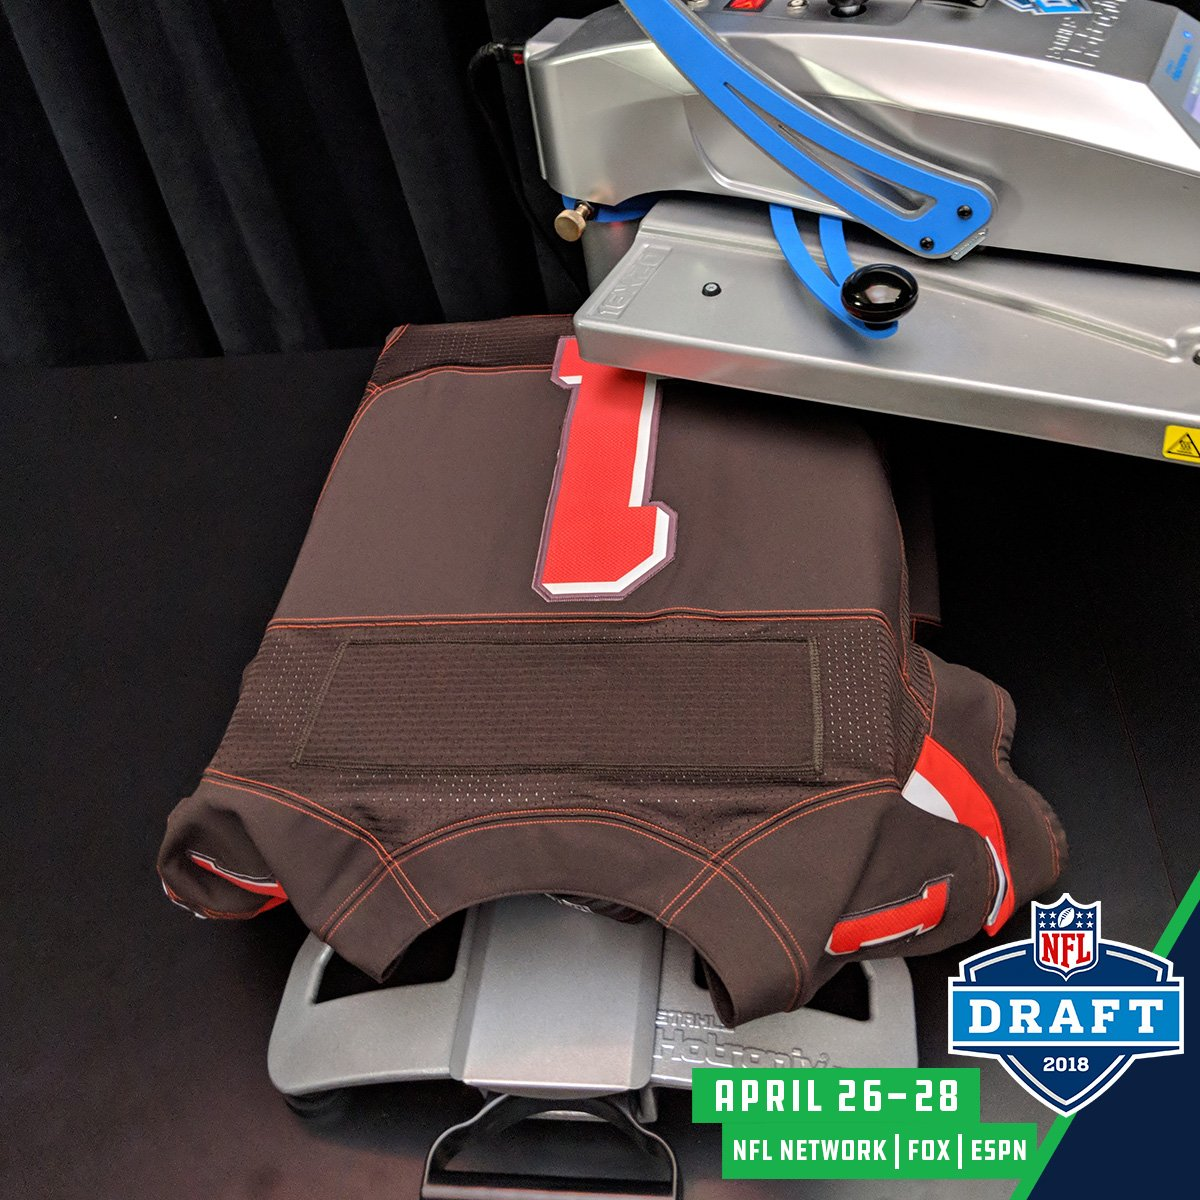 The @Browns are now on the clock! #NFLDraft  📺: NFLN/FOX/ESPN